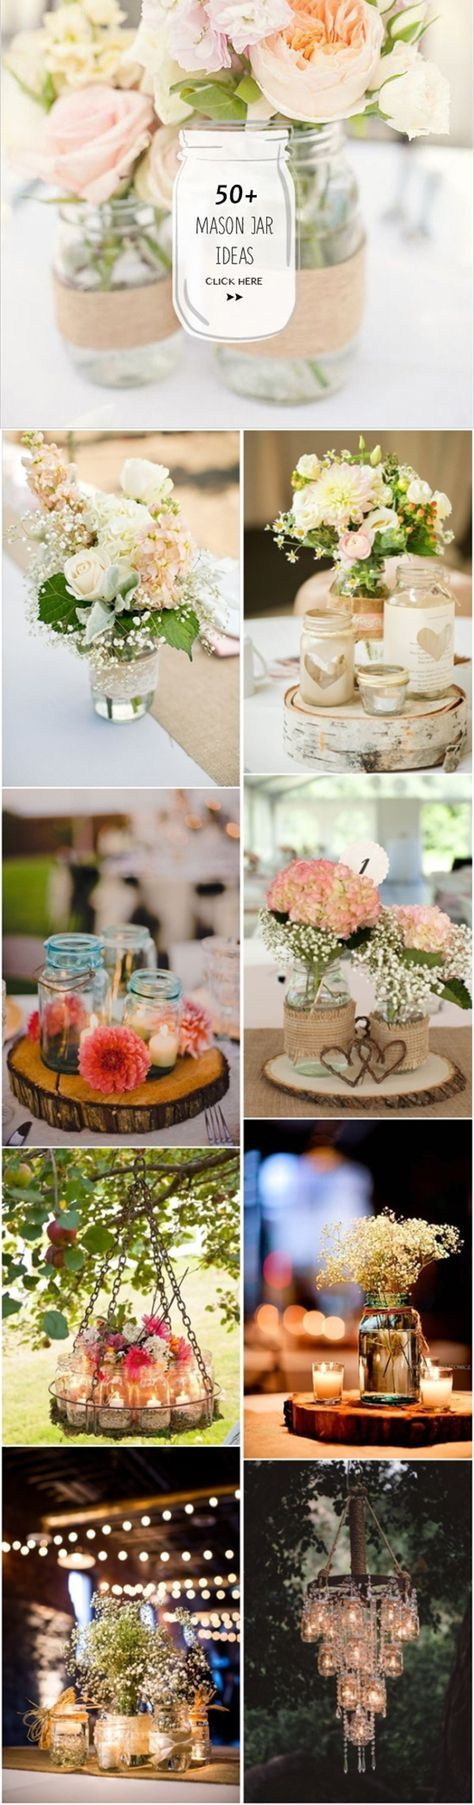 Gallery mason jar rustic wedding decor ideas deer pearl flowers